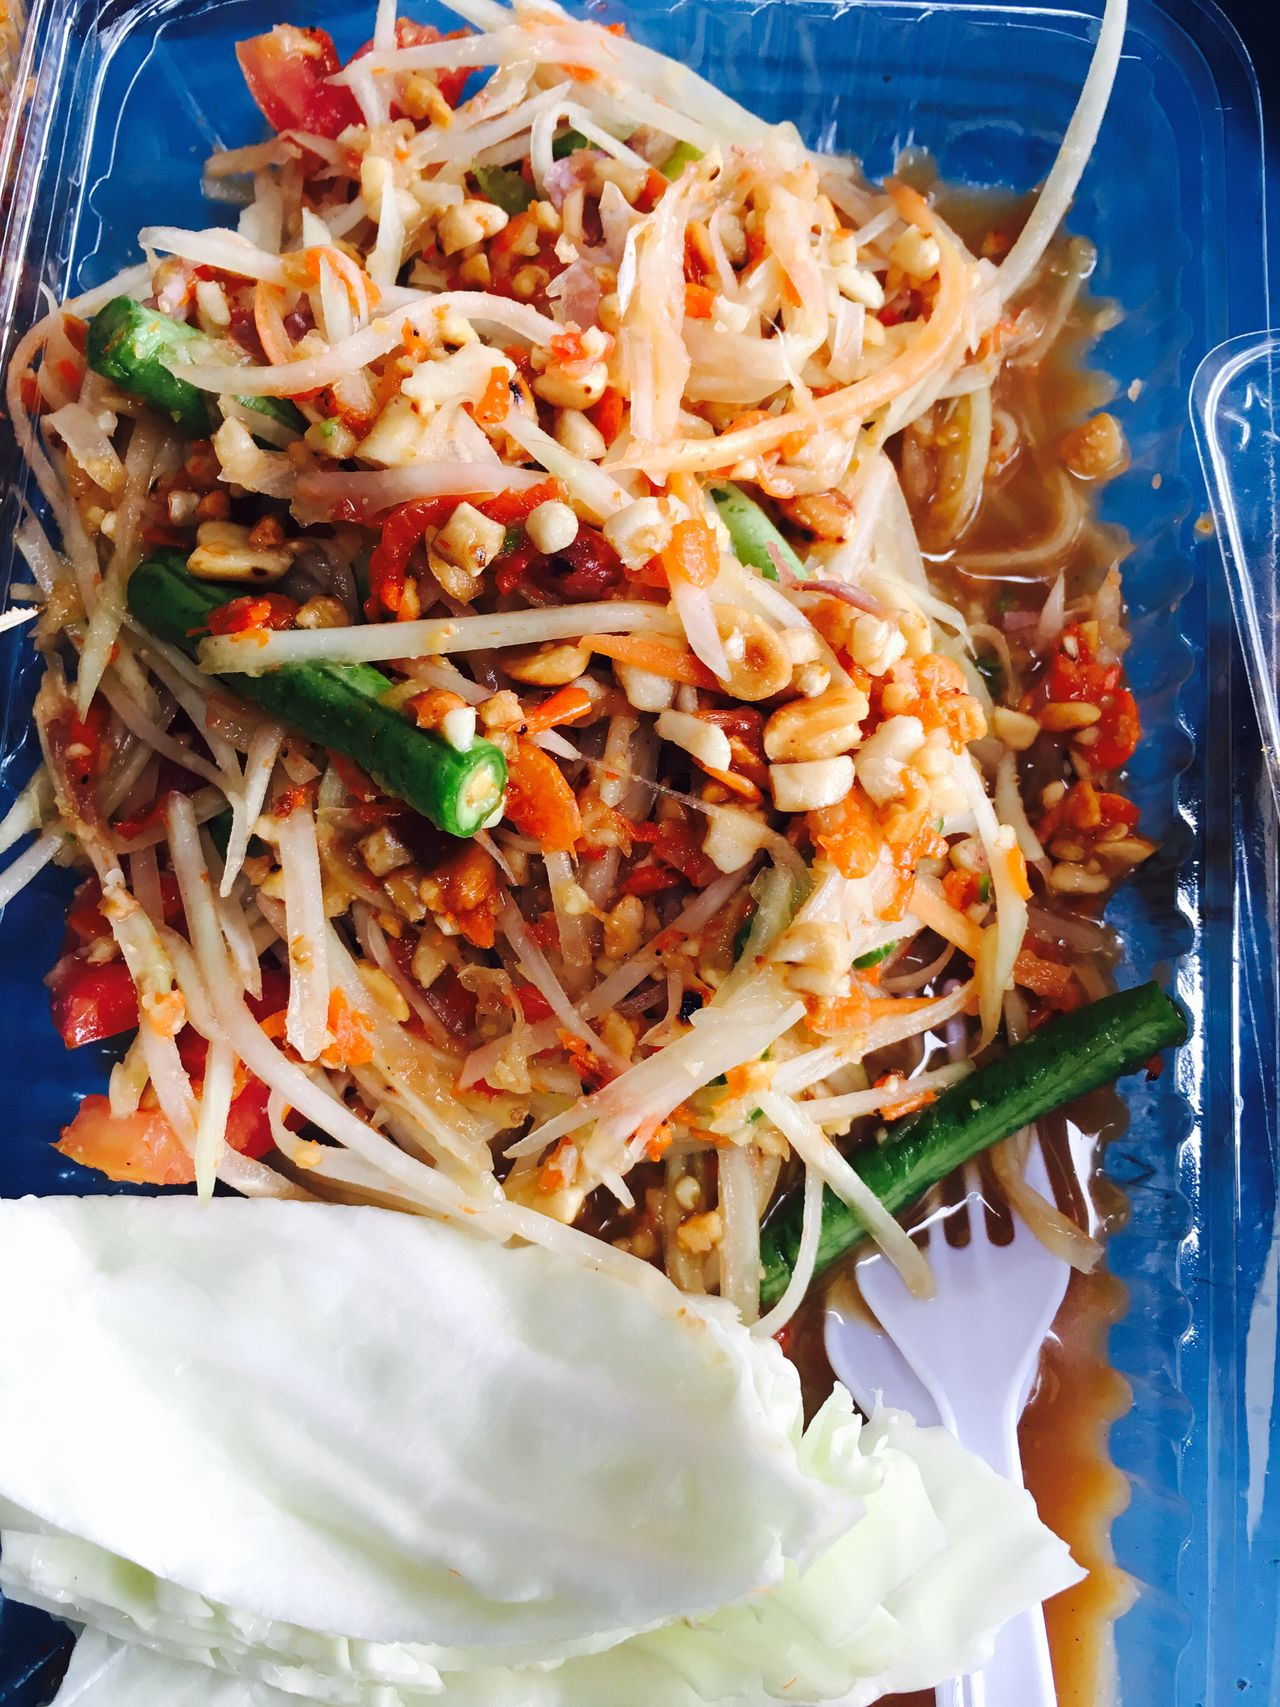 ส้มตำไทย🤤🤤🤤🤤 Green Papaya Shredded Carrot Bean Fish Sauce Sugar Lime Juice Tomato Dried Shrimps Peanuts Chilies Fresh Garlic 👍👍👍